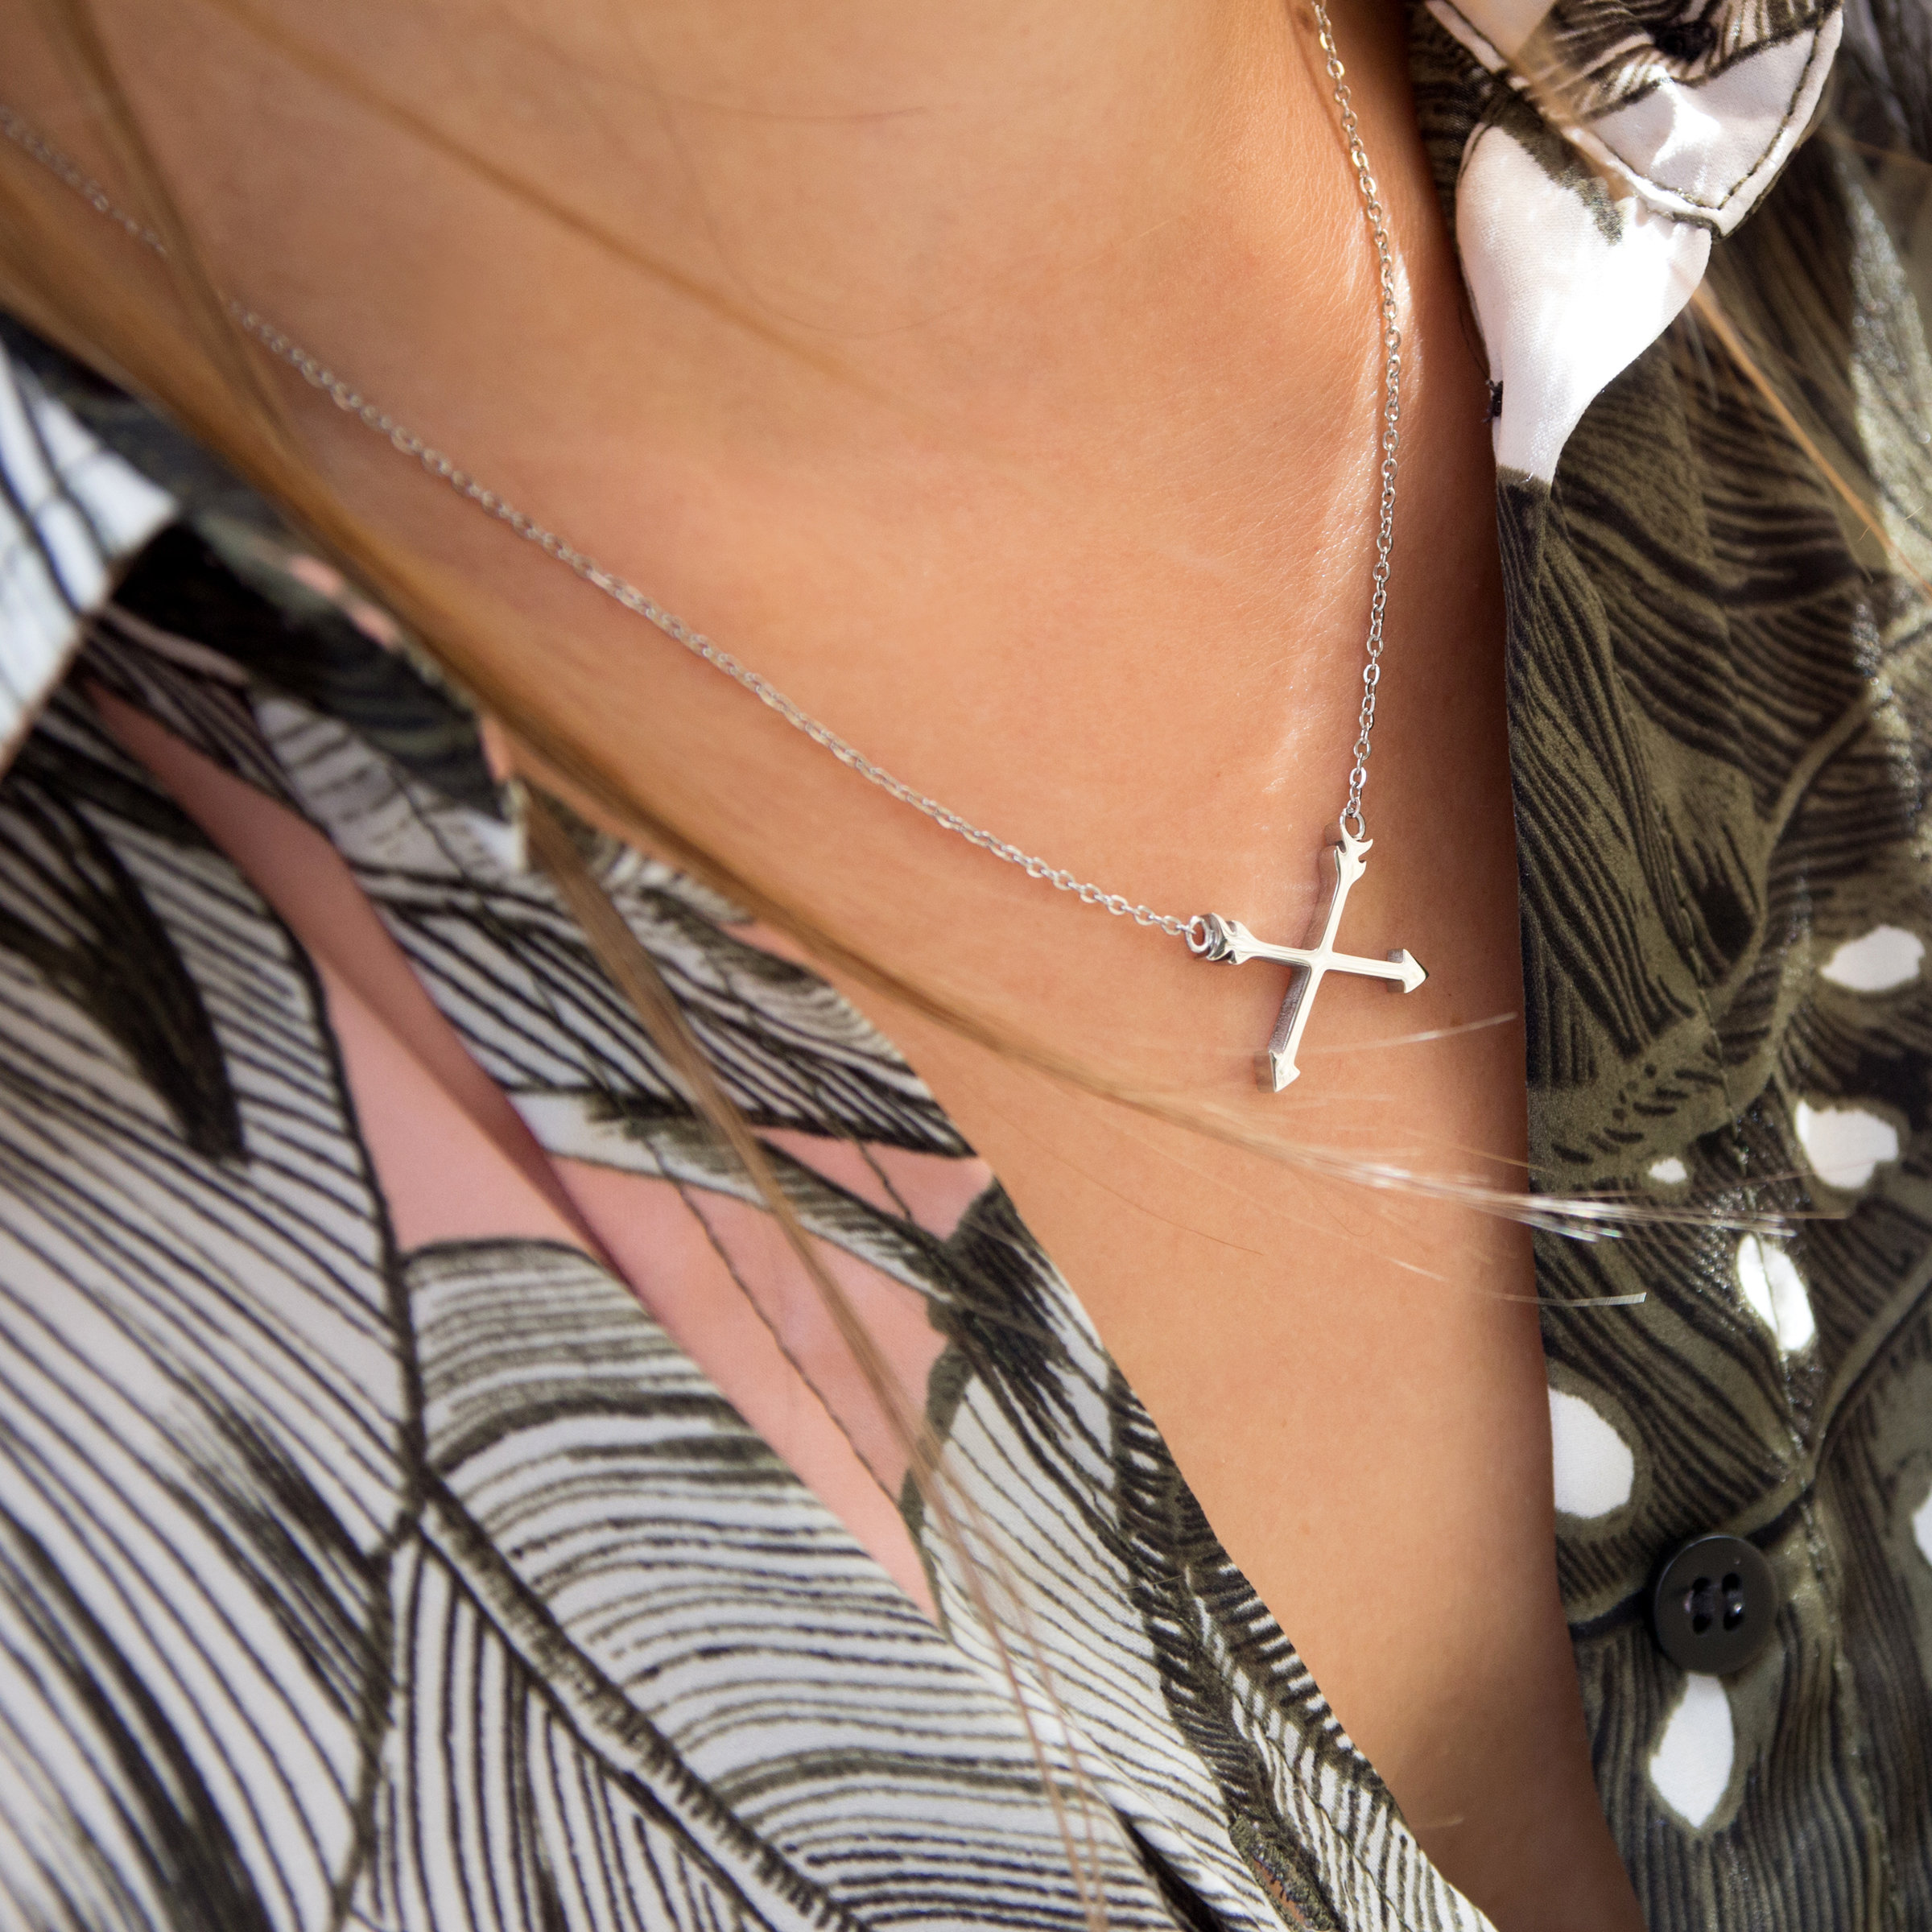 Kuku silver arrow necklace on model